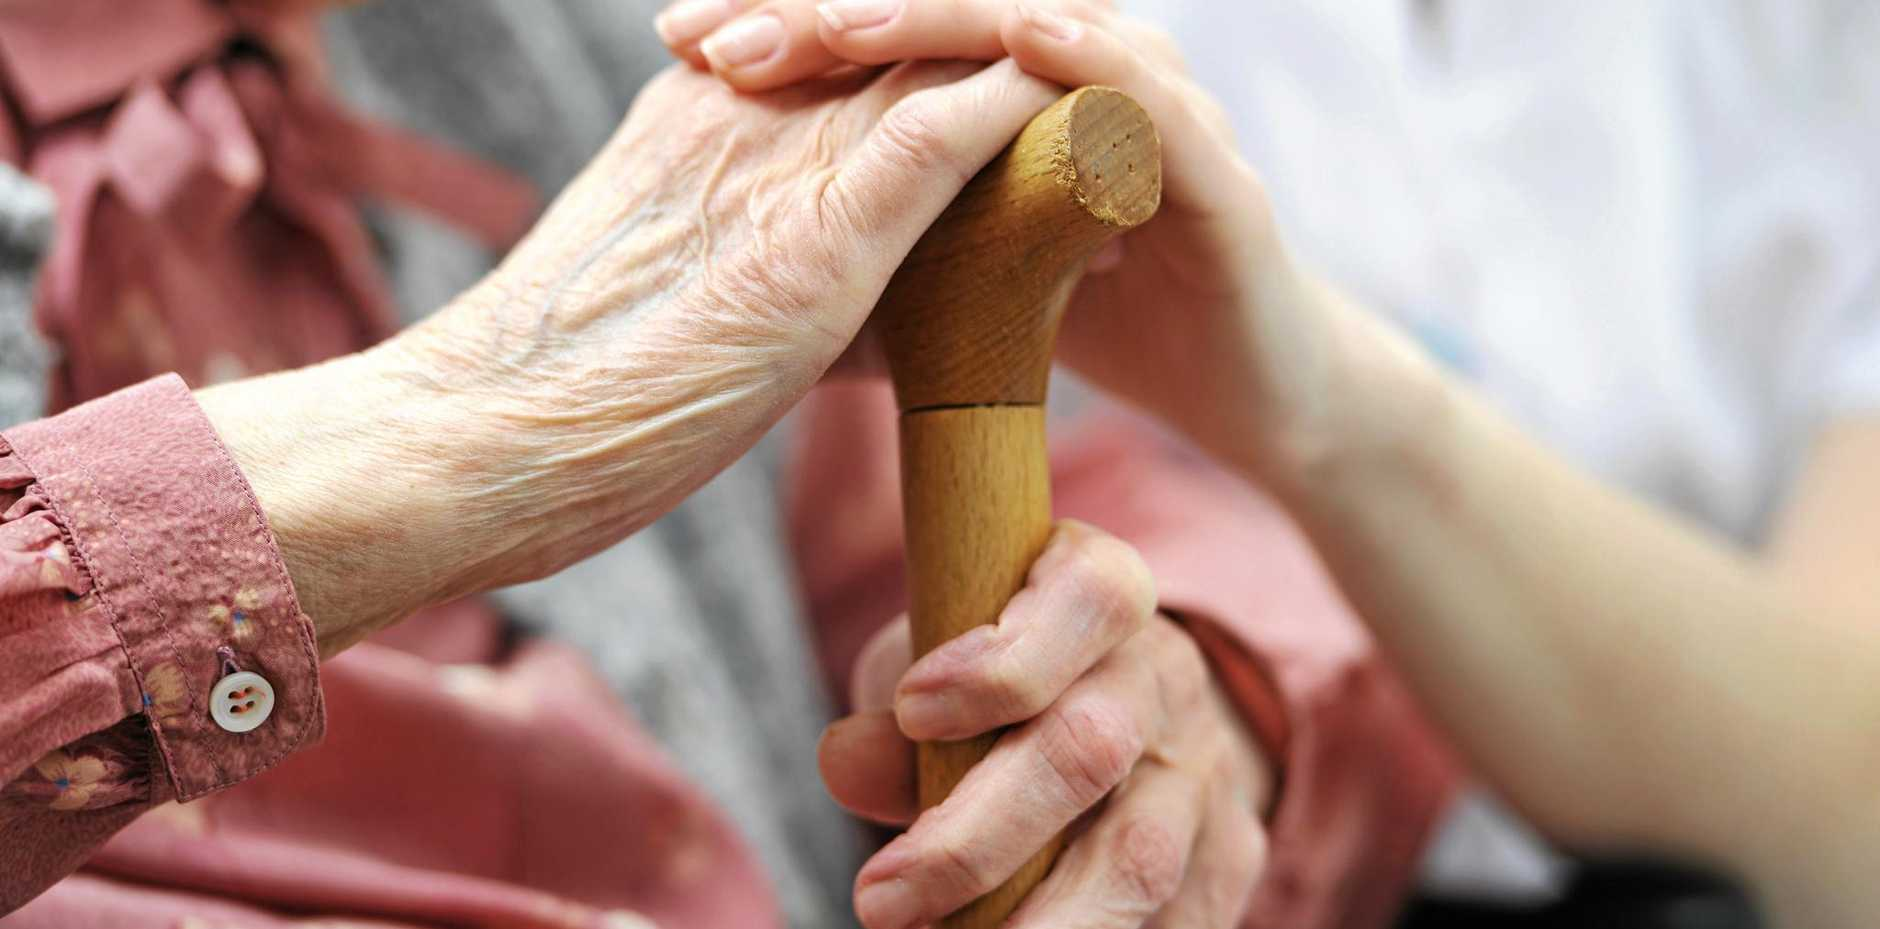 Aged care is a challenging environment, says Blue Care.